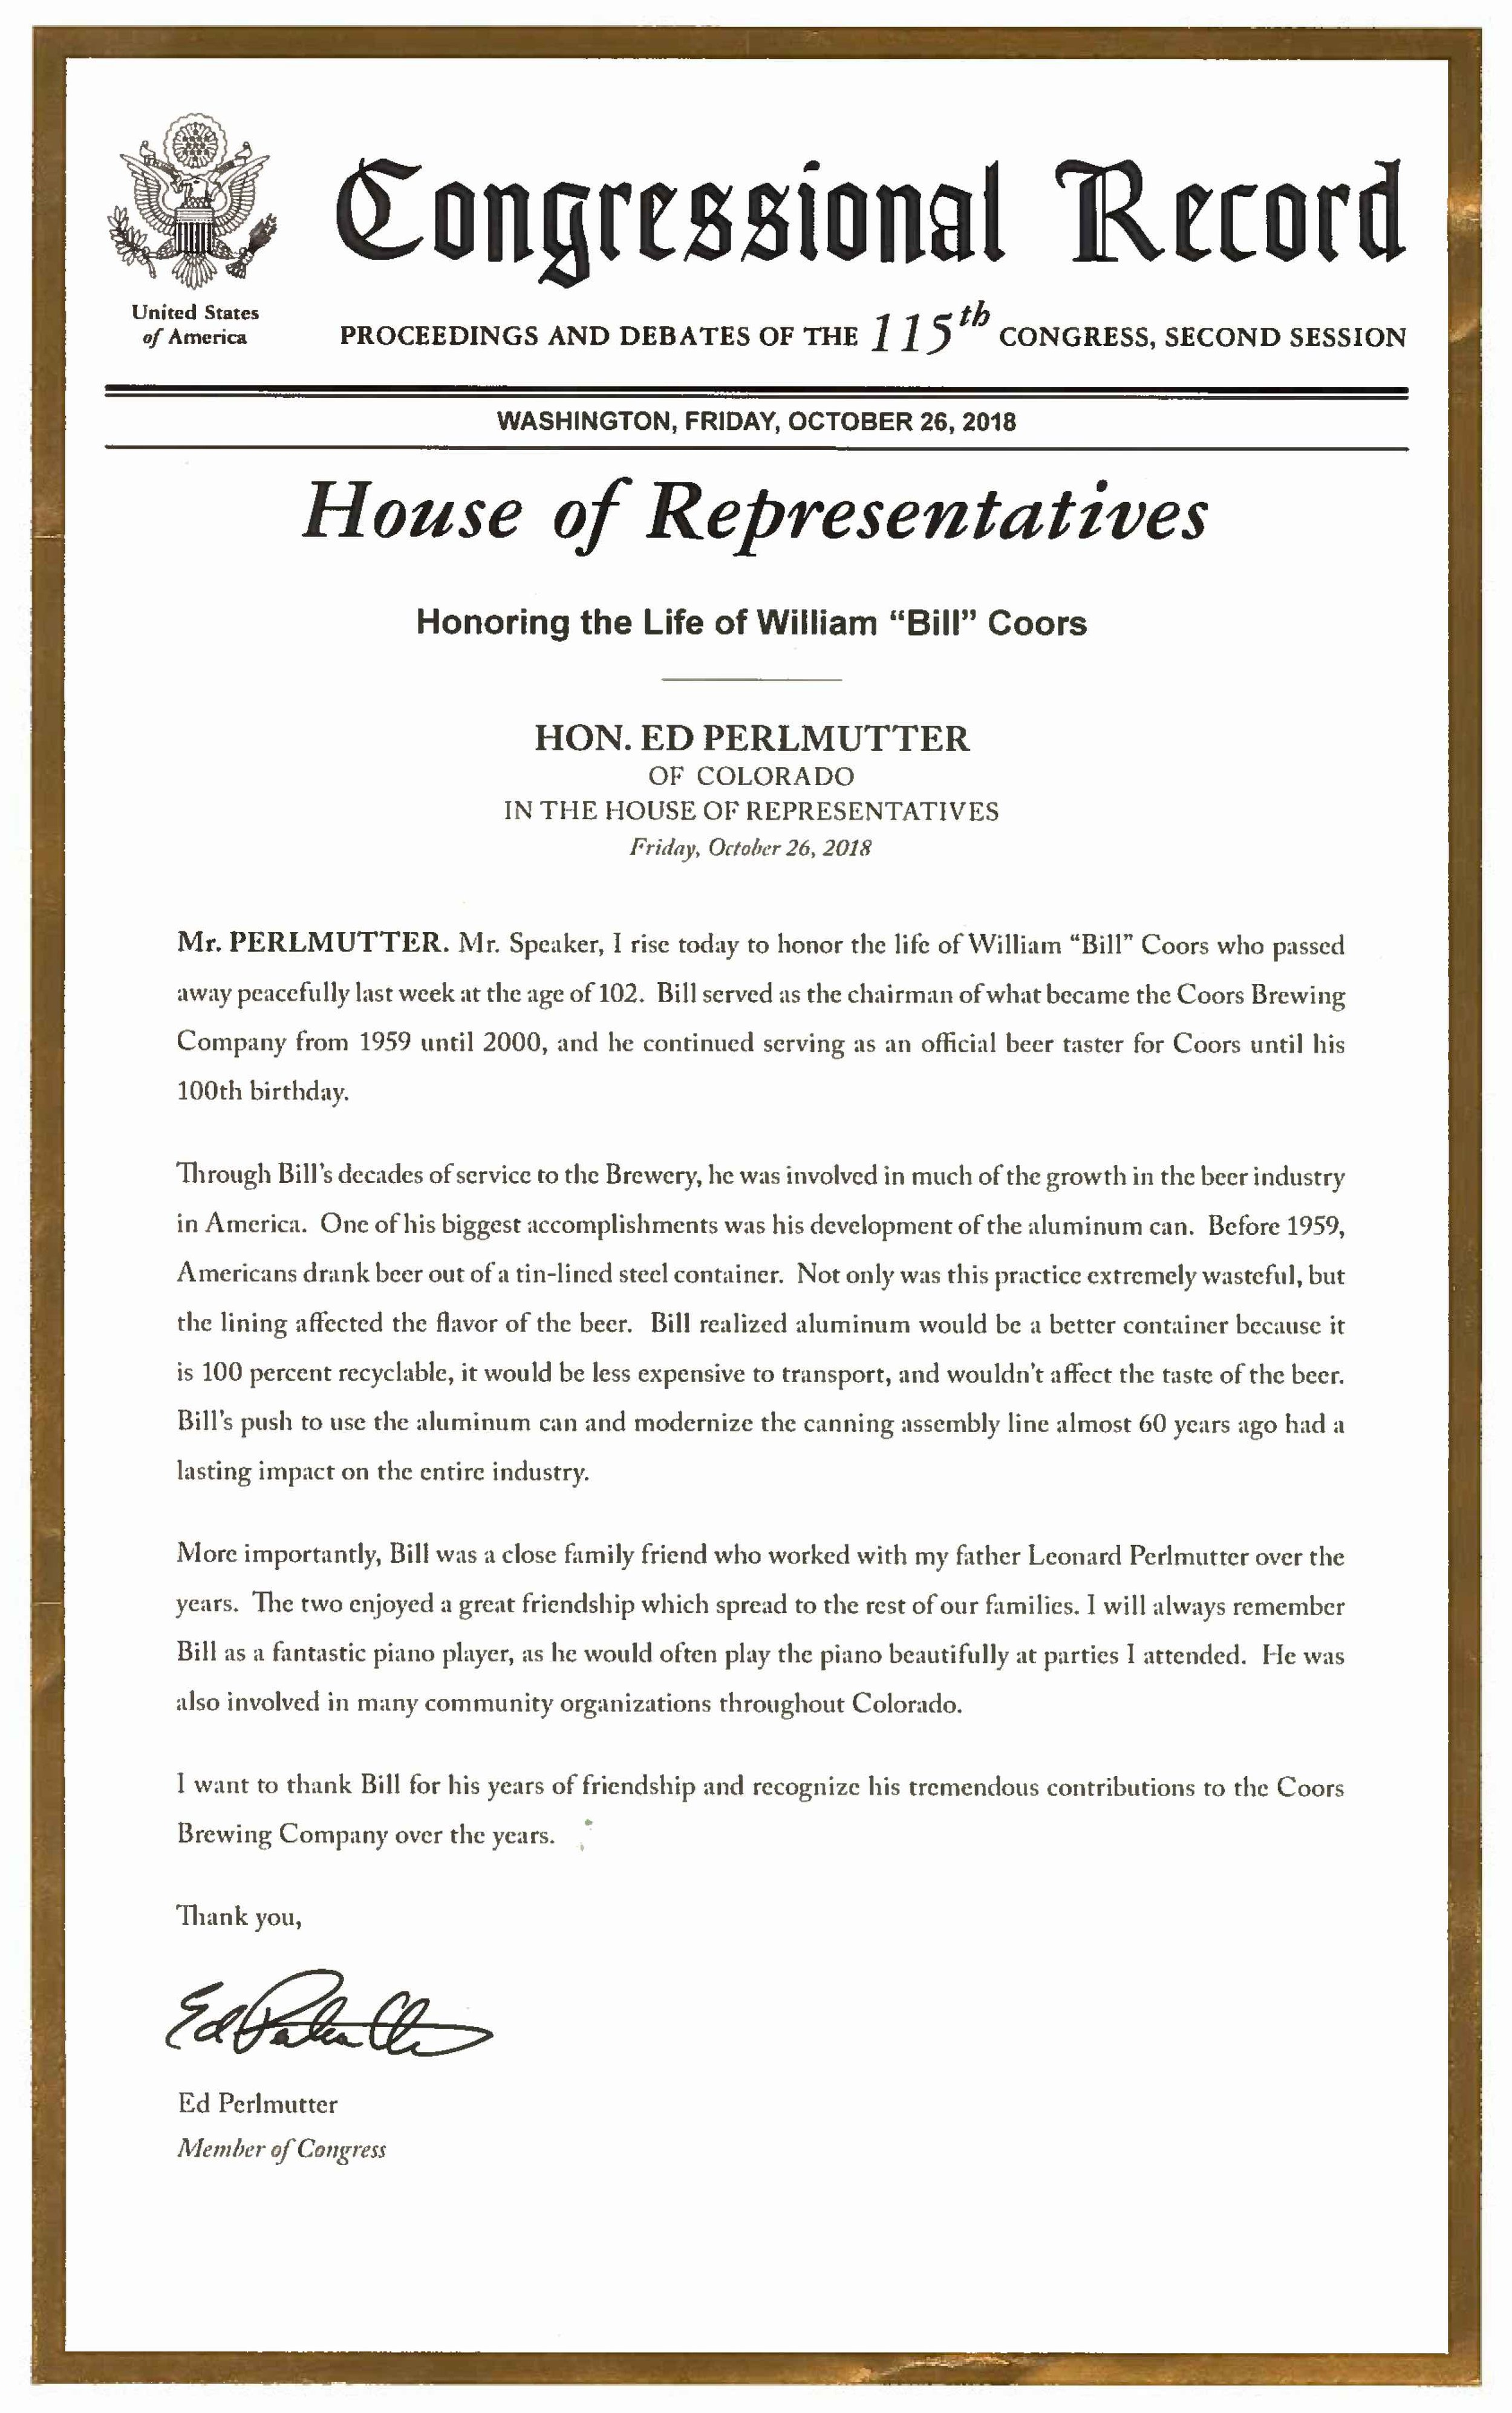 Bill Coors Congressional Record.jpg